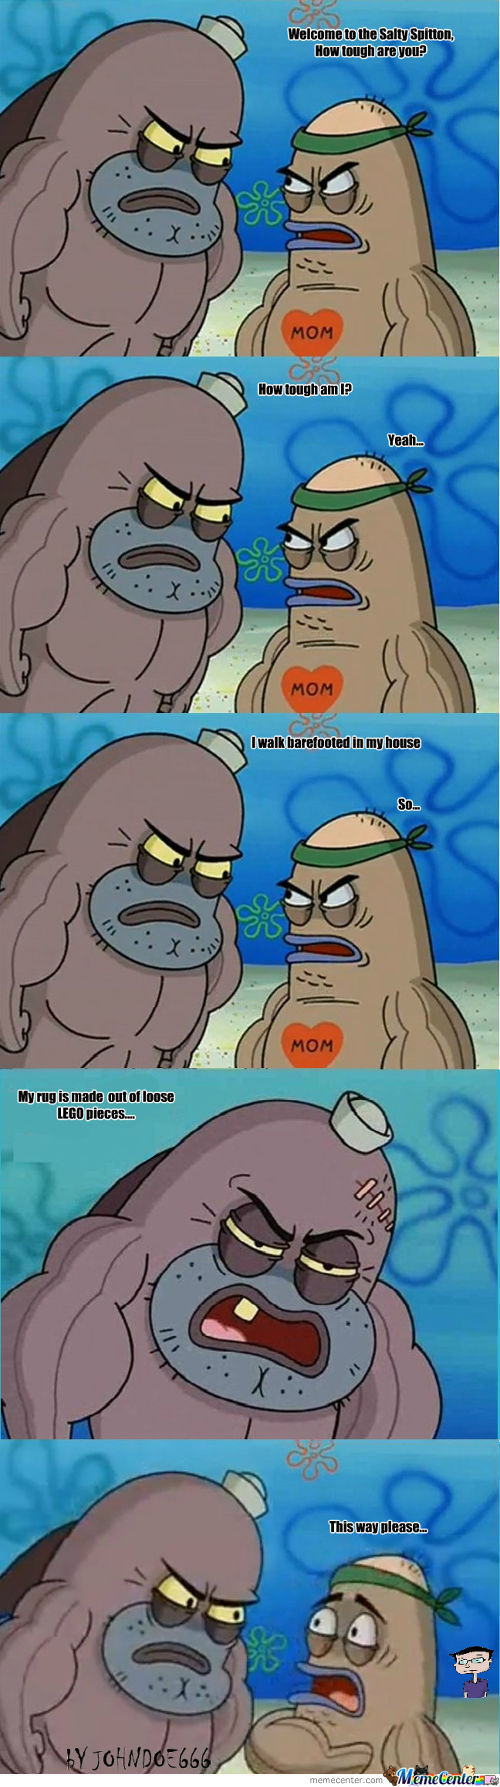 How Tough? Lego Level